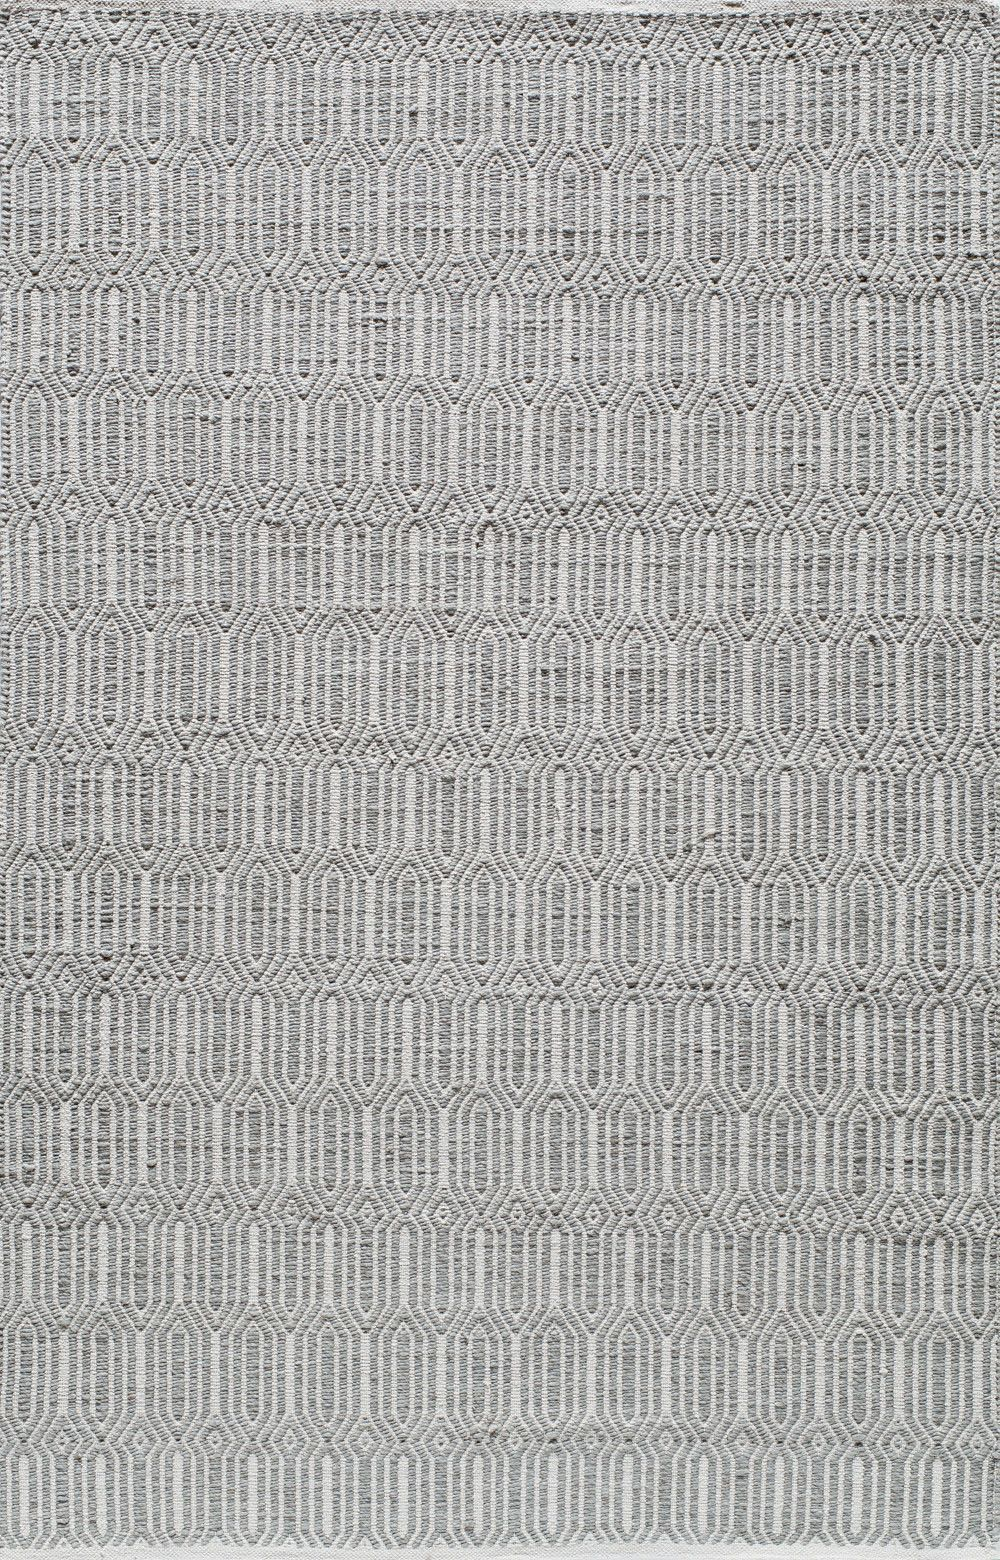 Hand-Woven Silver Area Rug